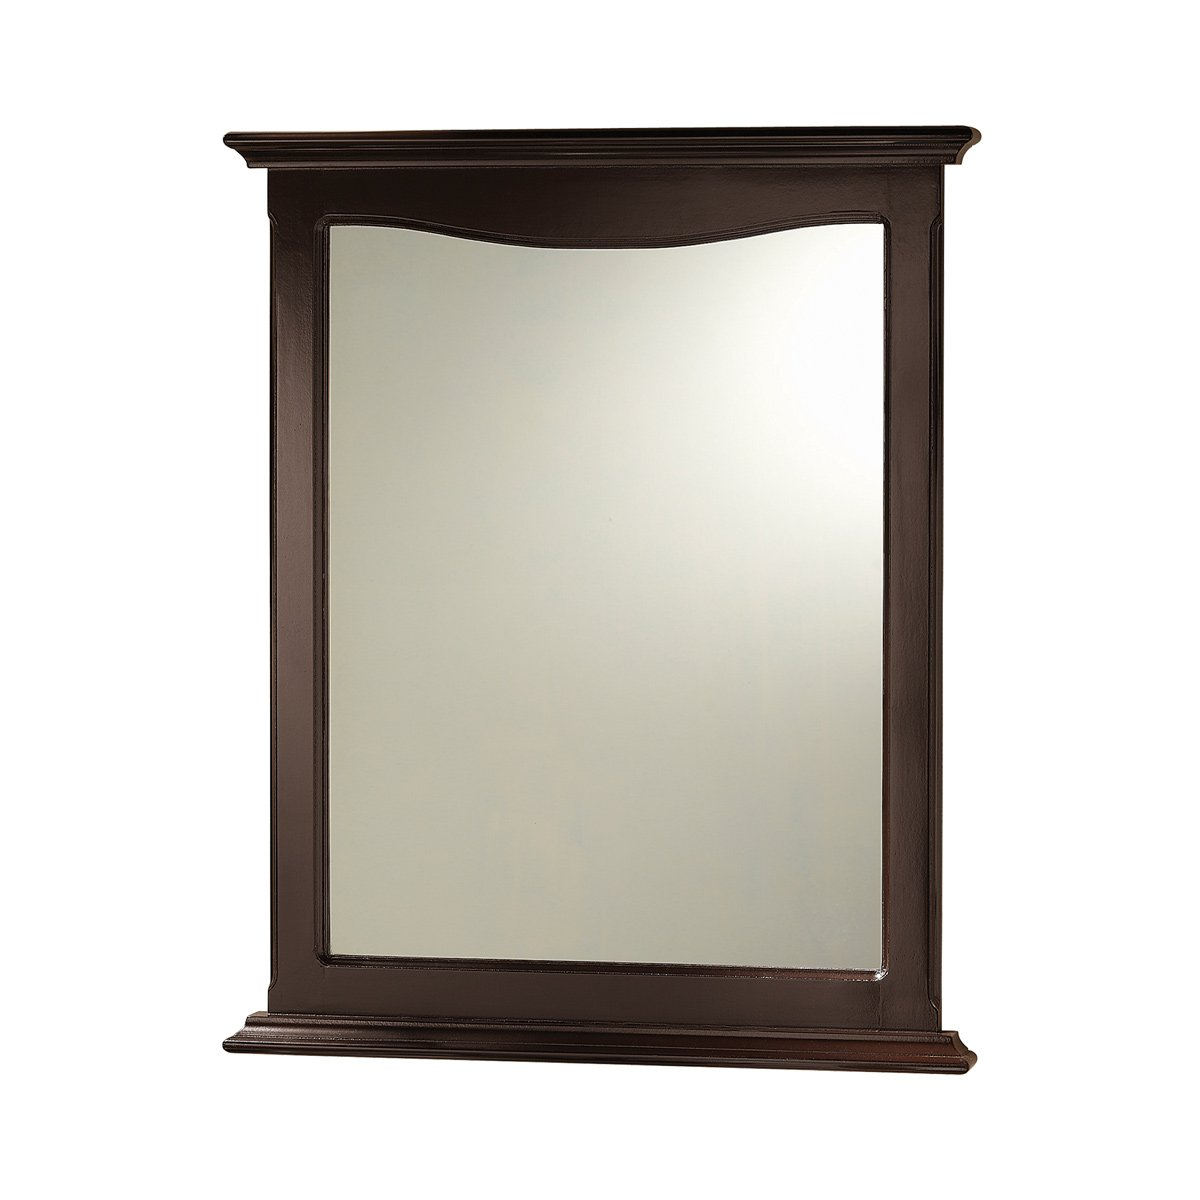 Amazon Foremost PAEM2531 Palermo Espresso Bathroom Mirror